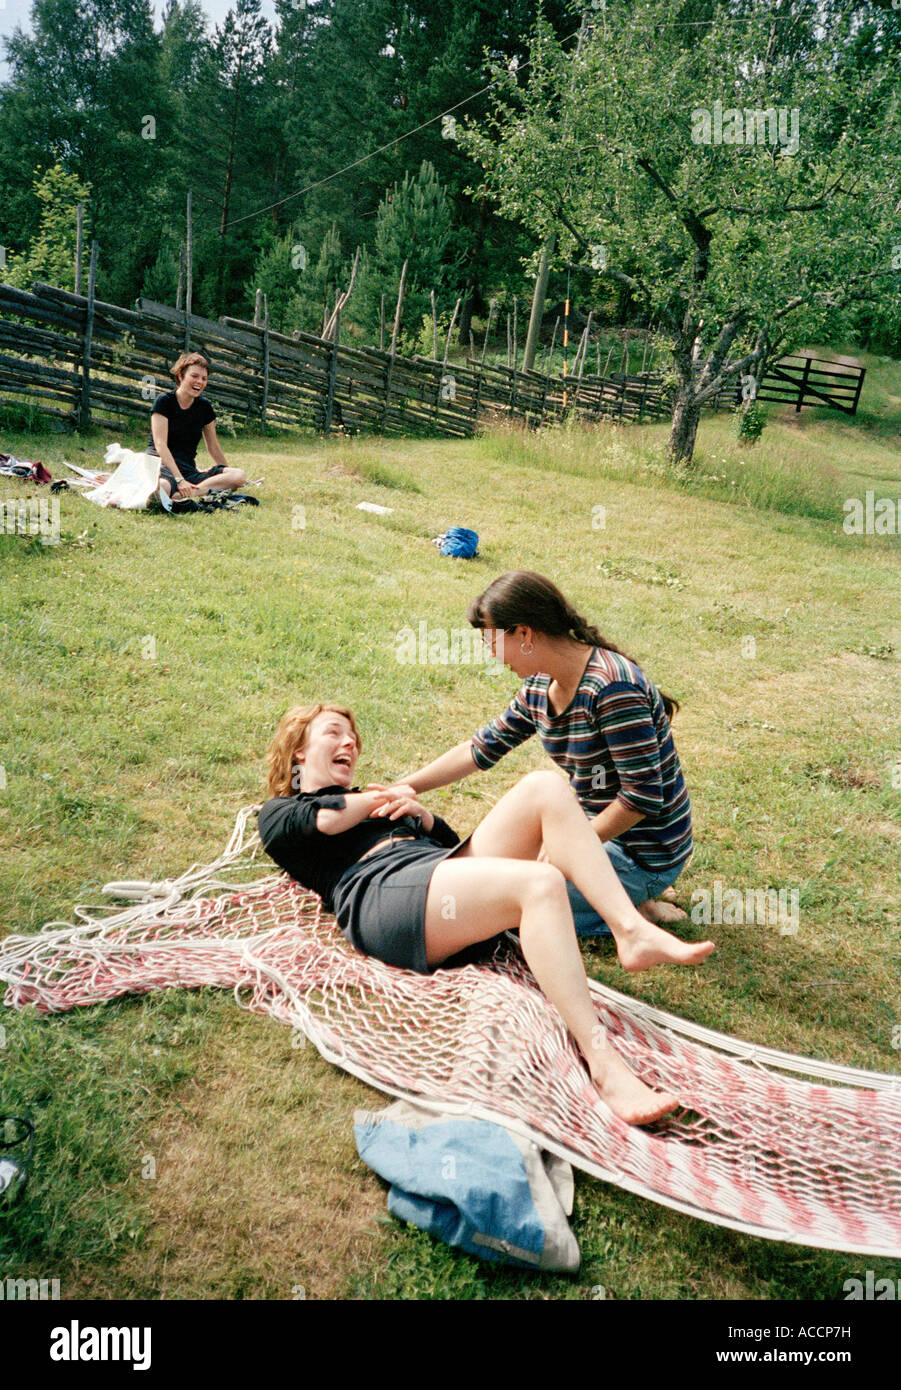 Medium image of two women with a broken hammock